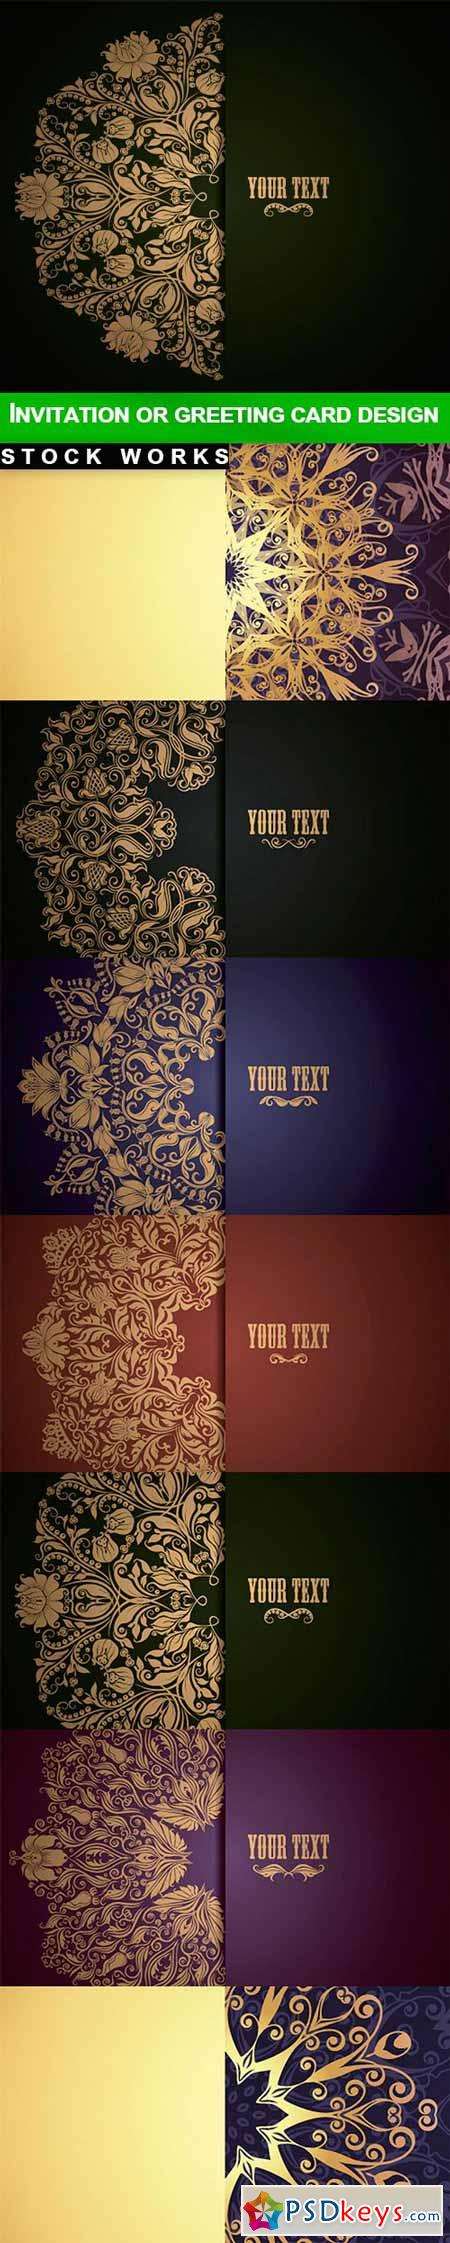 Invitation or greeting card design - 14 EPS